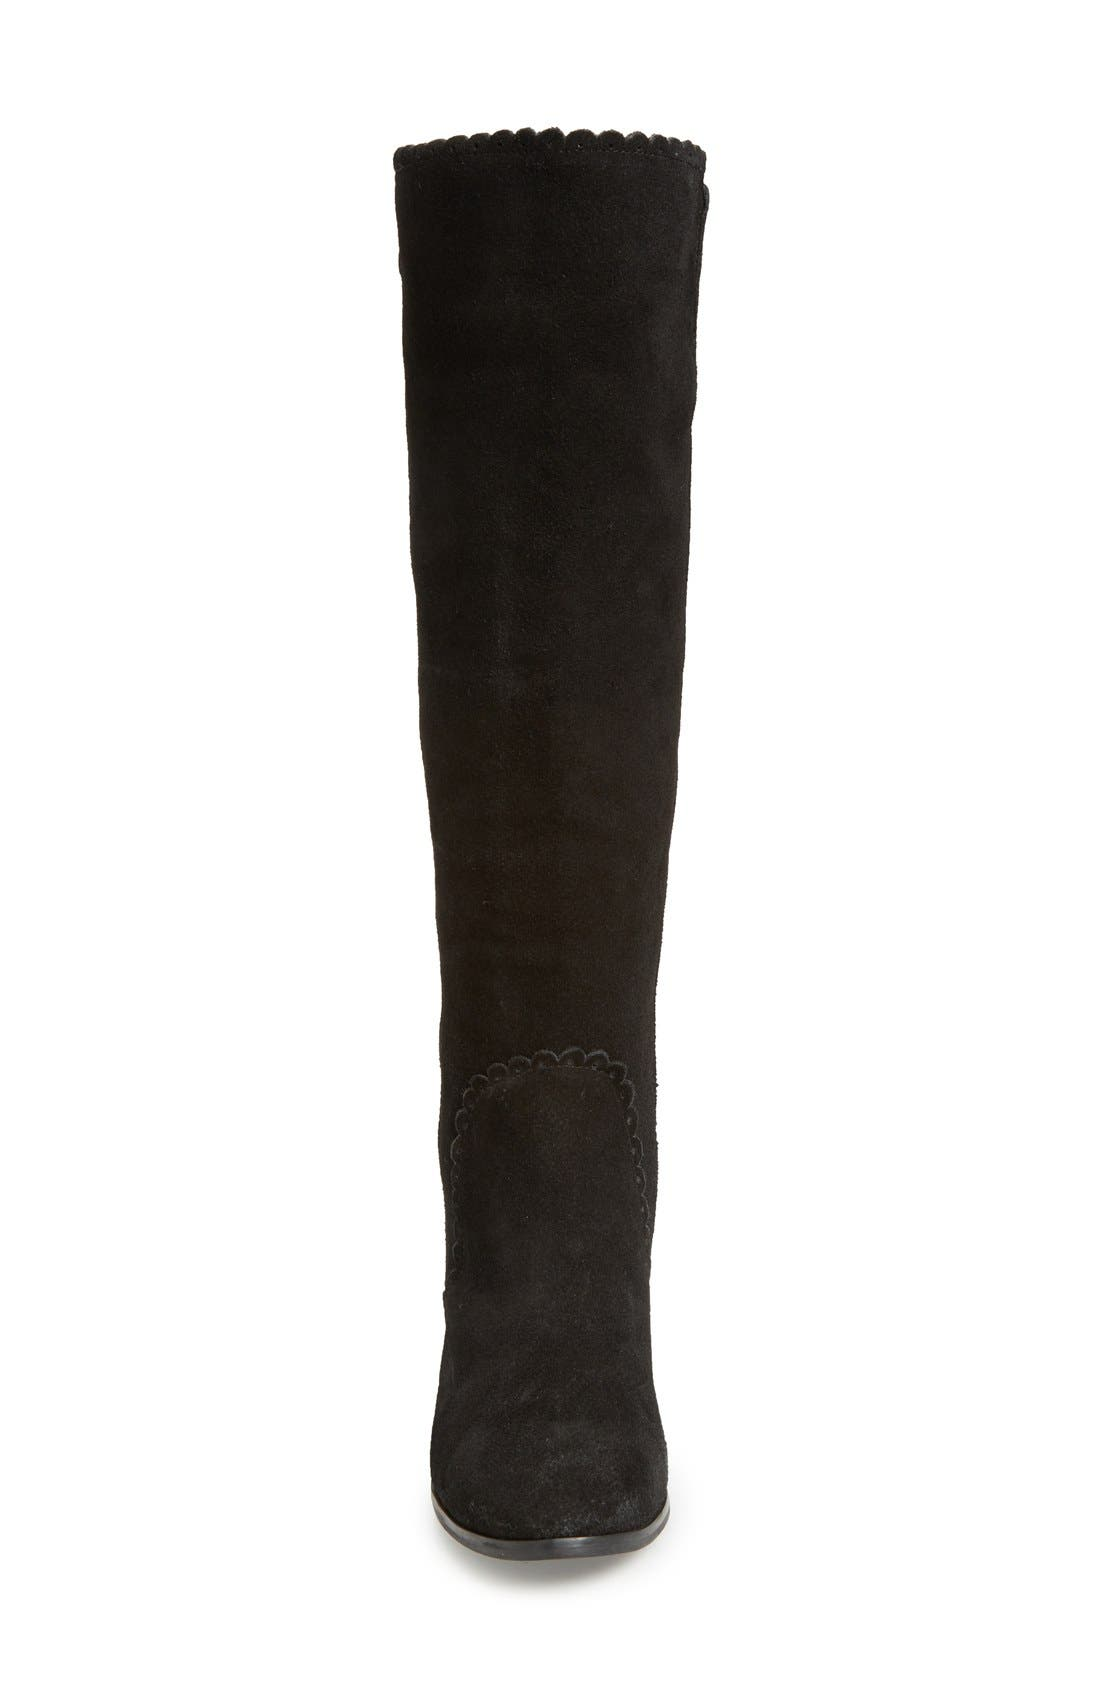 Alternate Image 3  - Jack Rogers 'Mia' Knee High Wedge Boot (Women)